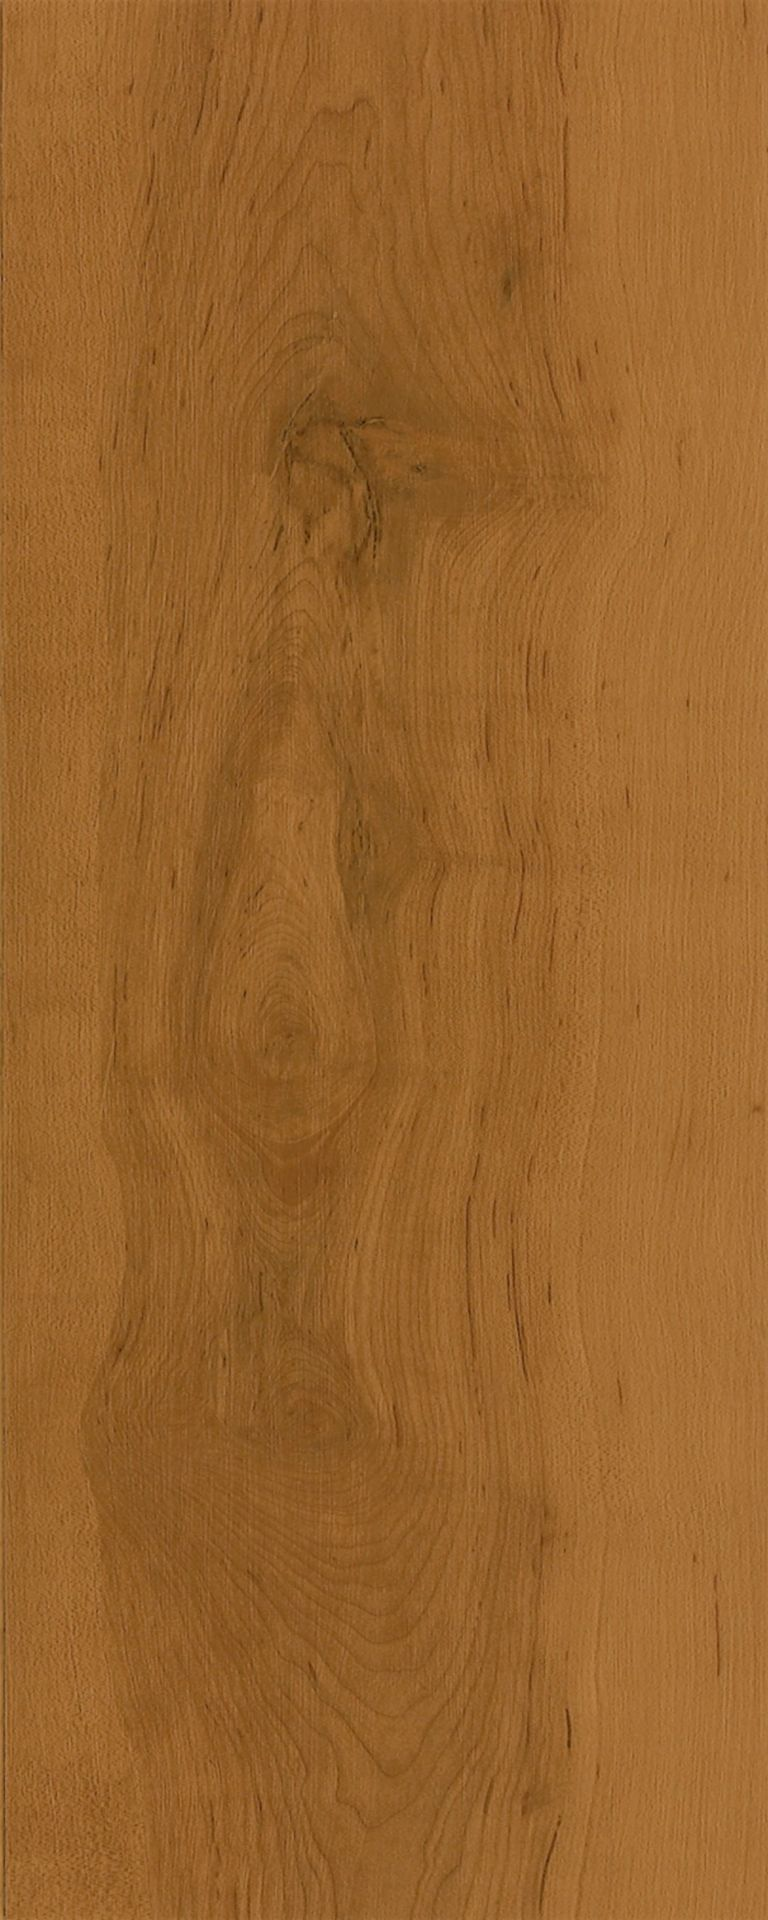 Sugar Creek Maple - Cinnamon Luxury Vinyl A6804